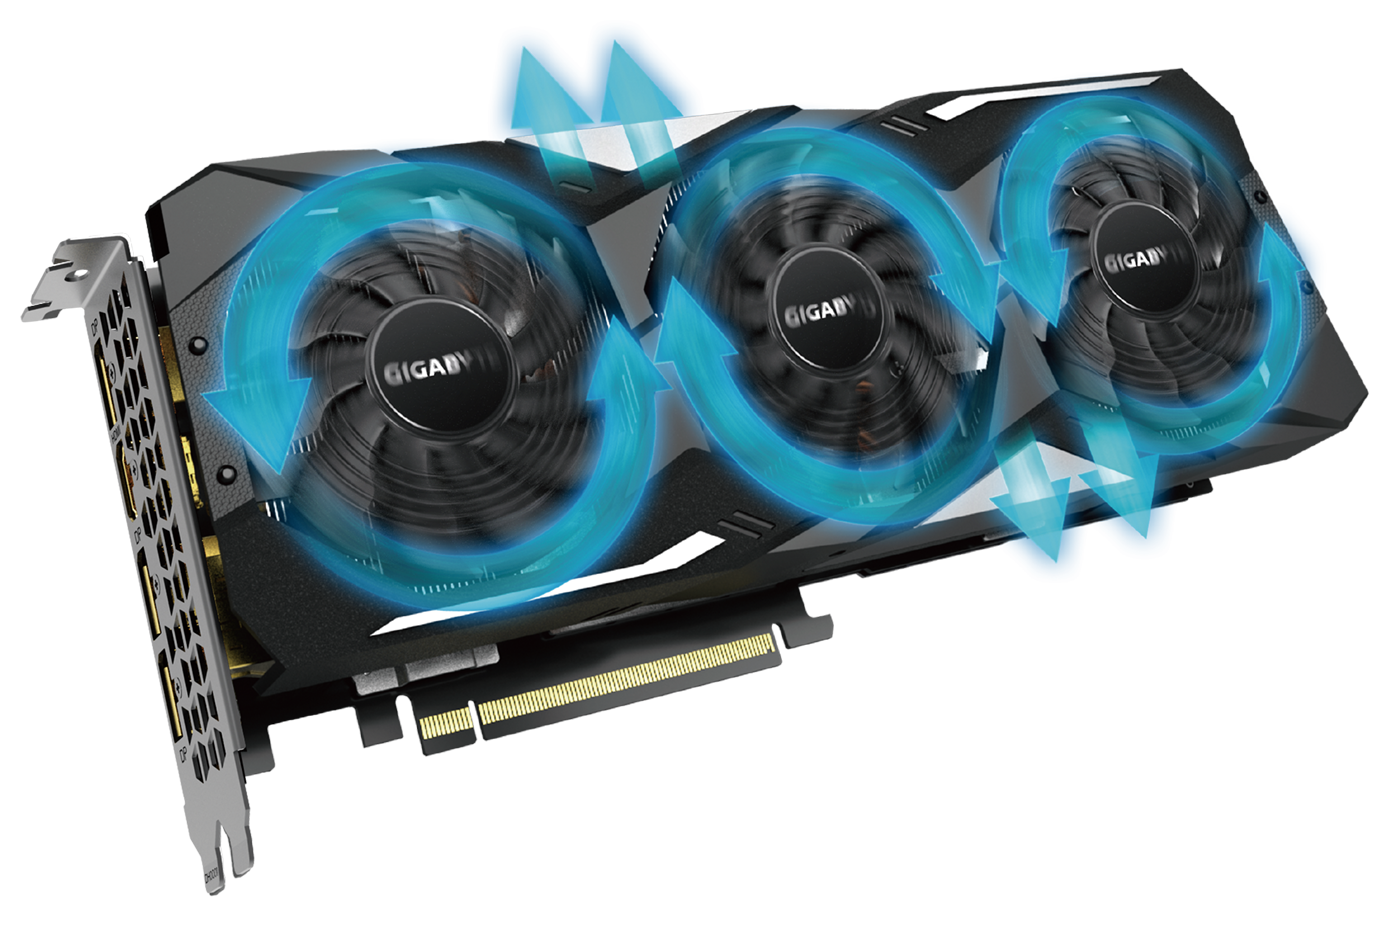 GeForce® RTX 2070 SUPER™ WINDFORCE OC 3X 8G with the alluminum radiator